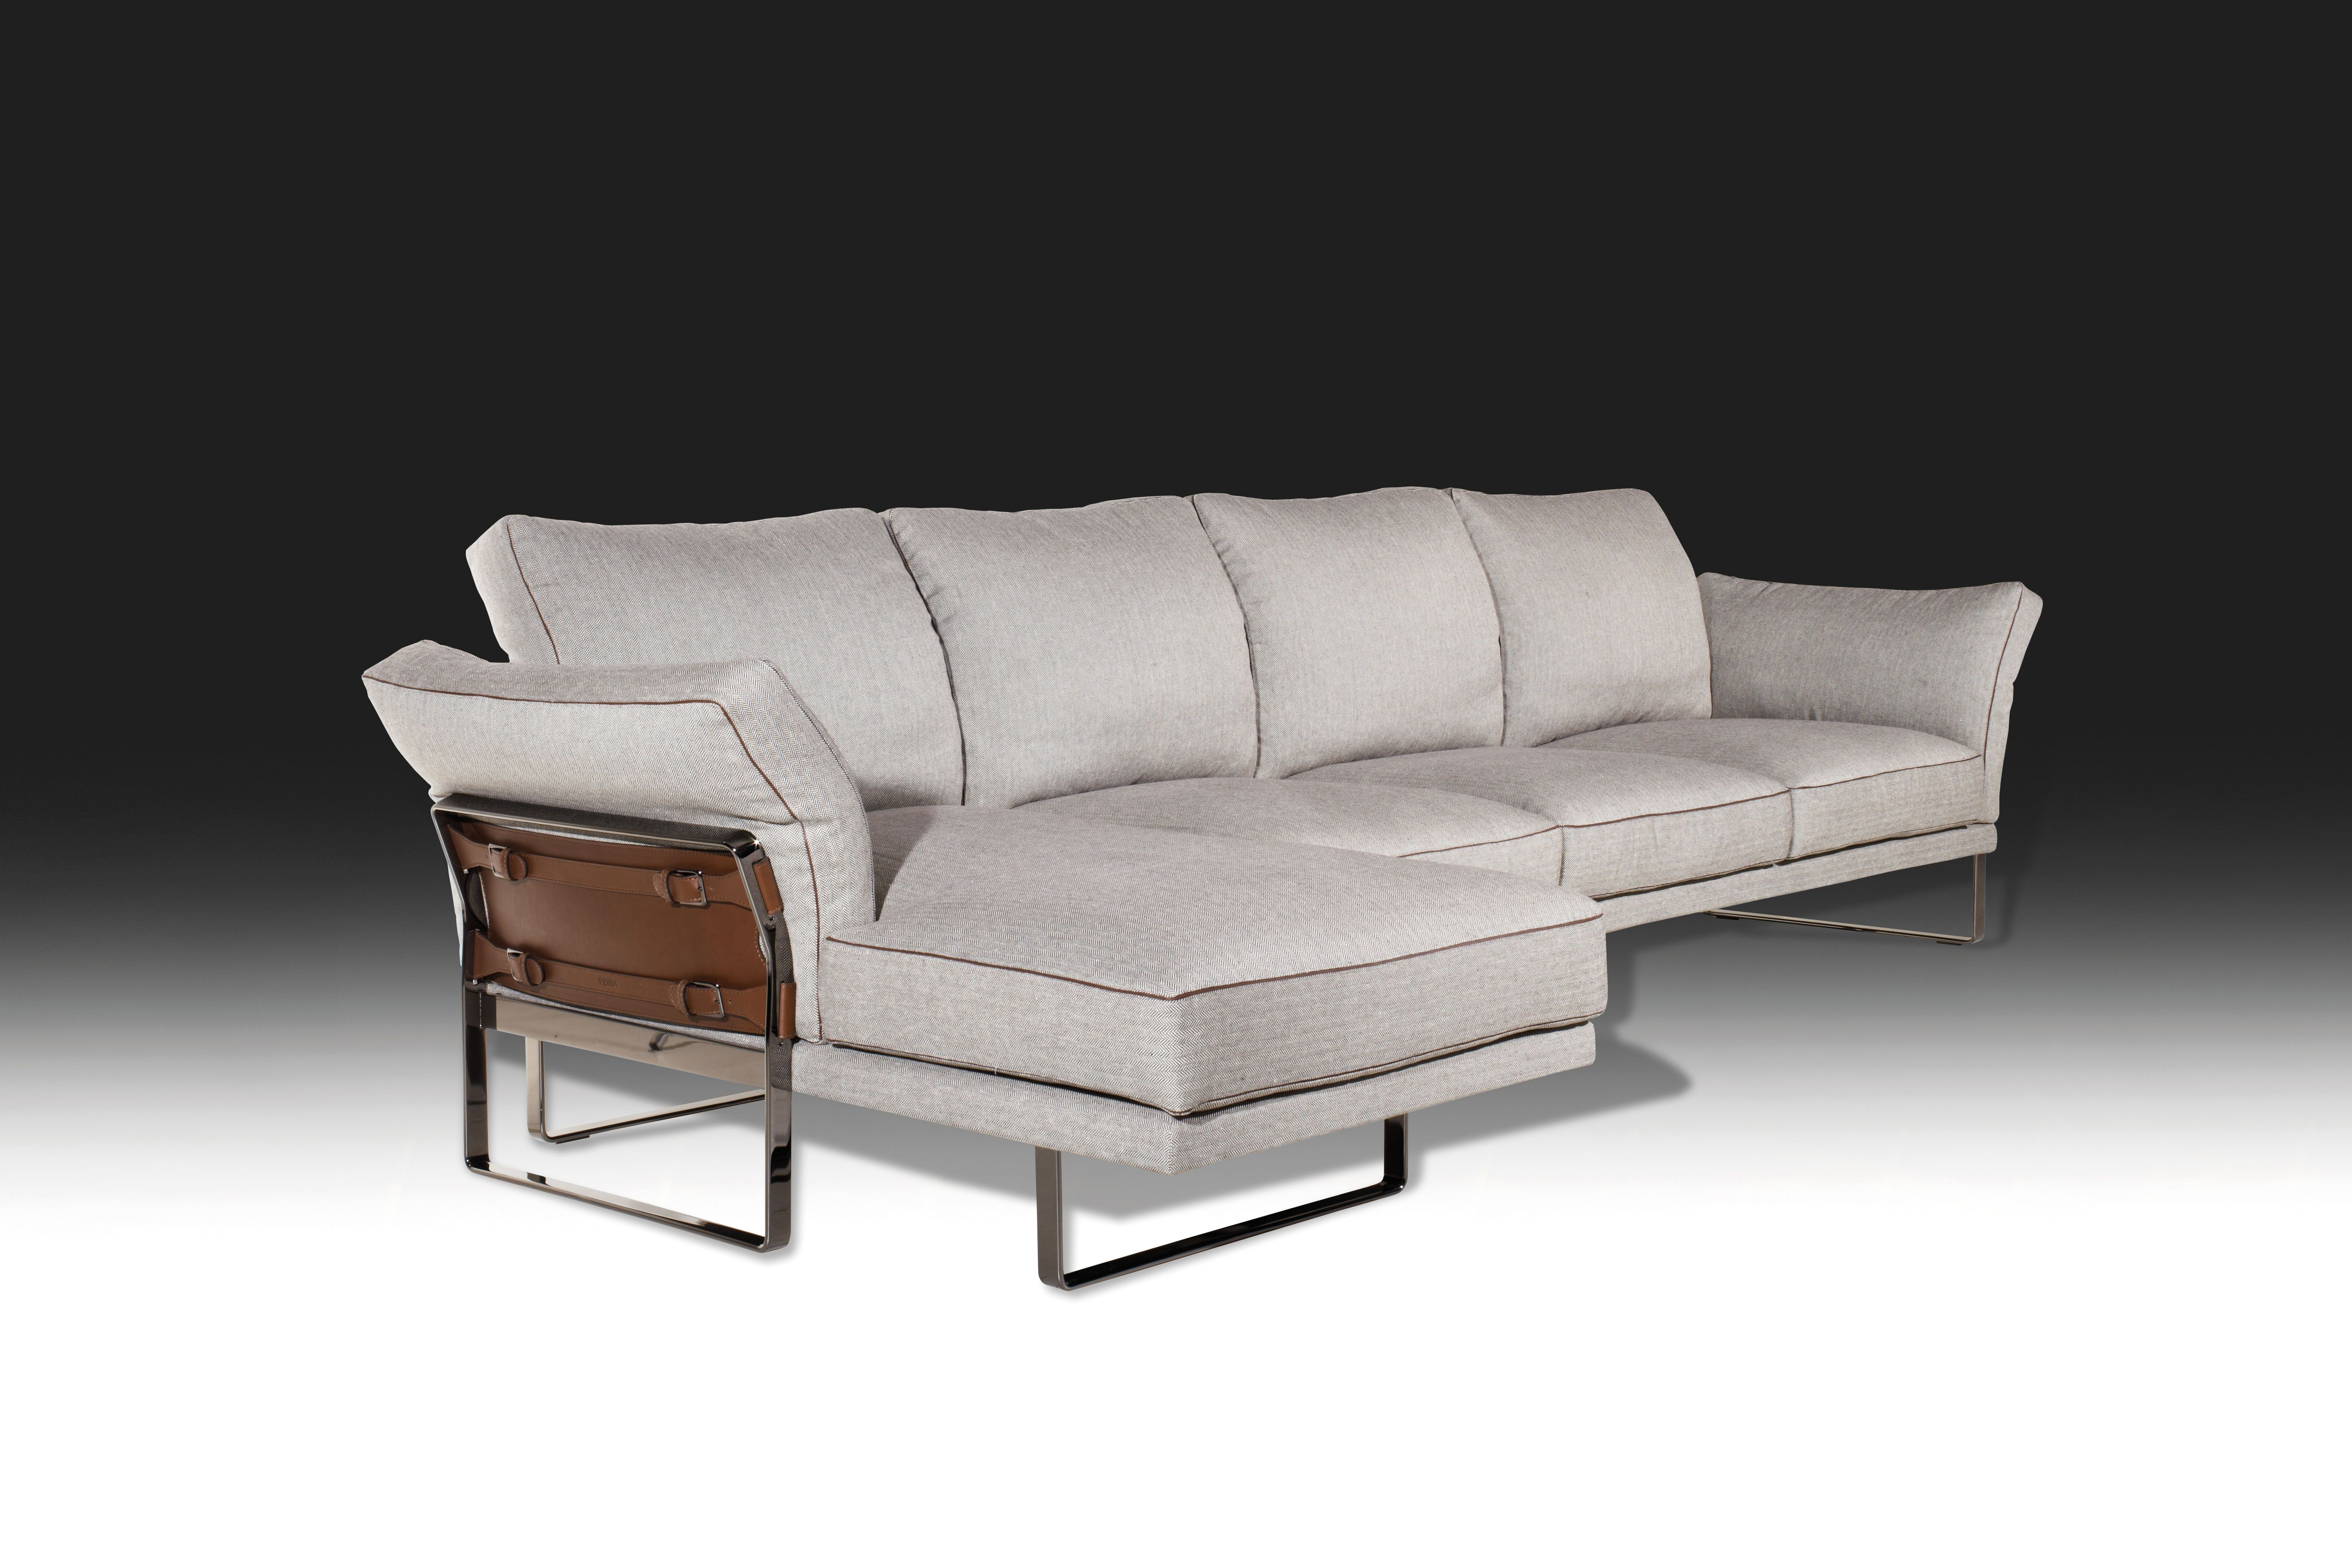 1868 KUKA K touch Pure White Sectional